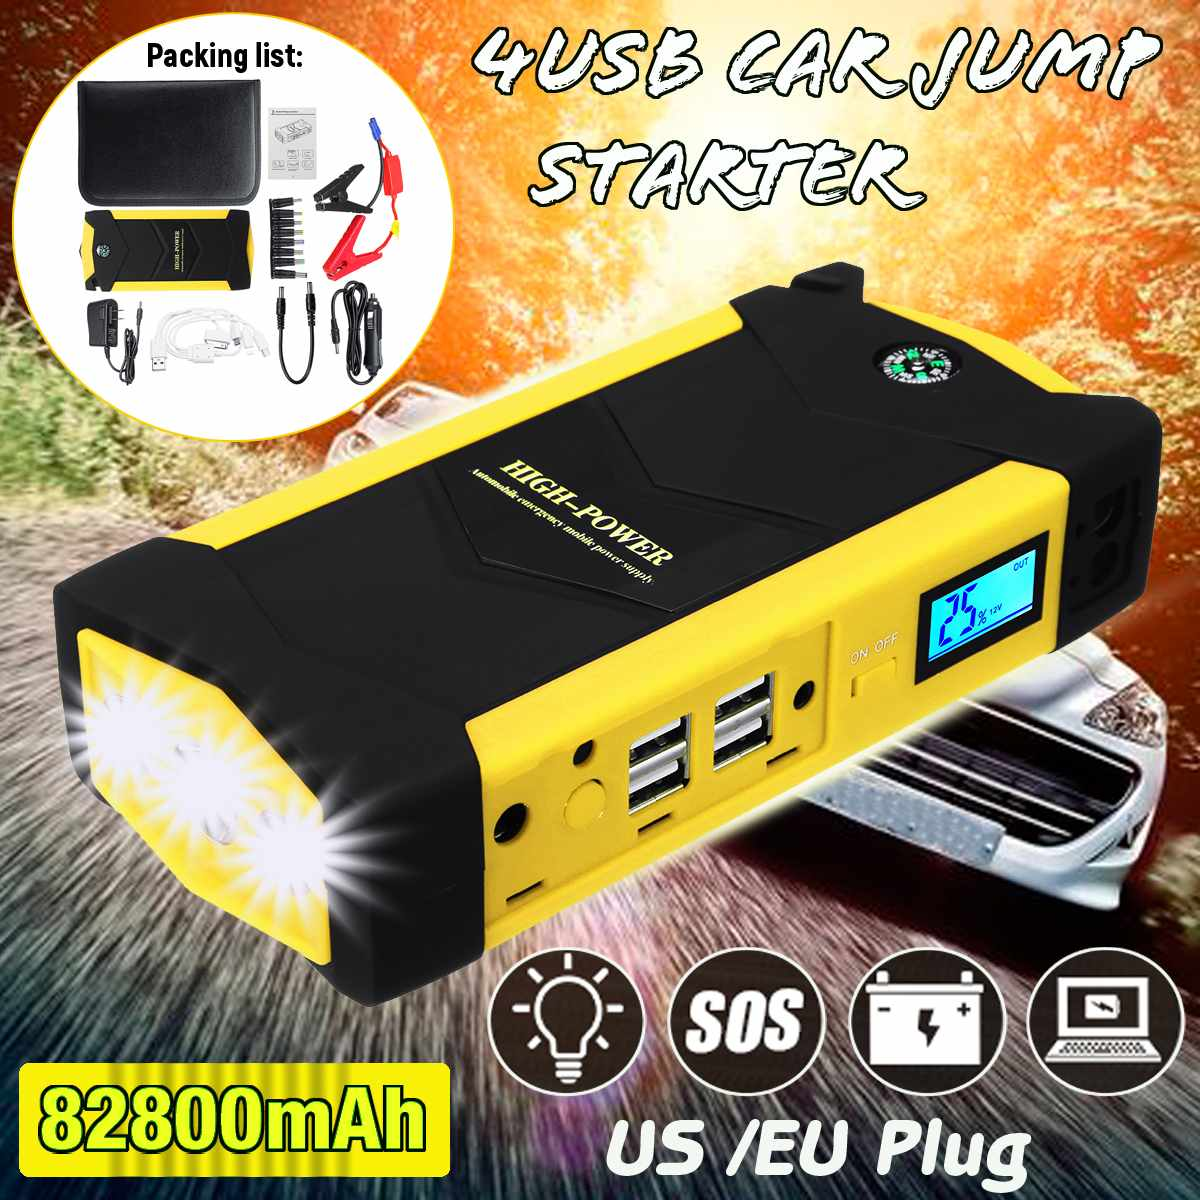 82800mAh 4USB Waterproof Car Jump Starter Power Bank Multifunction Emergency Battery Charger 12V Starting Device